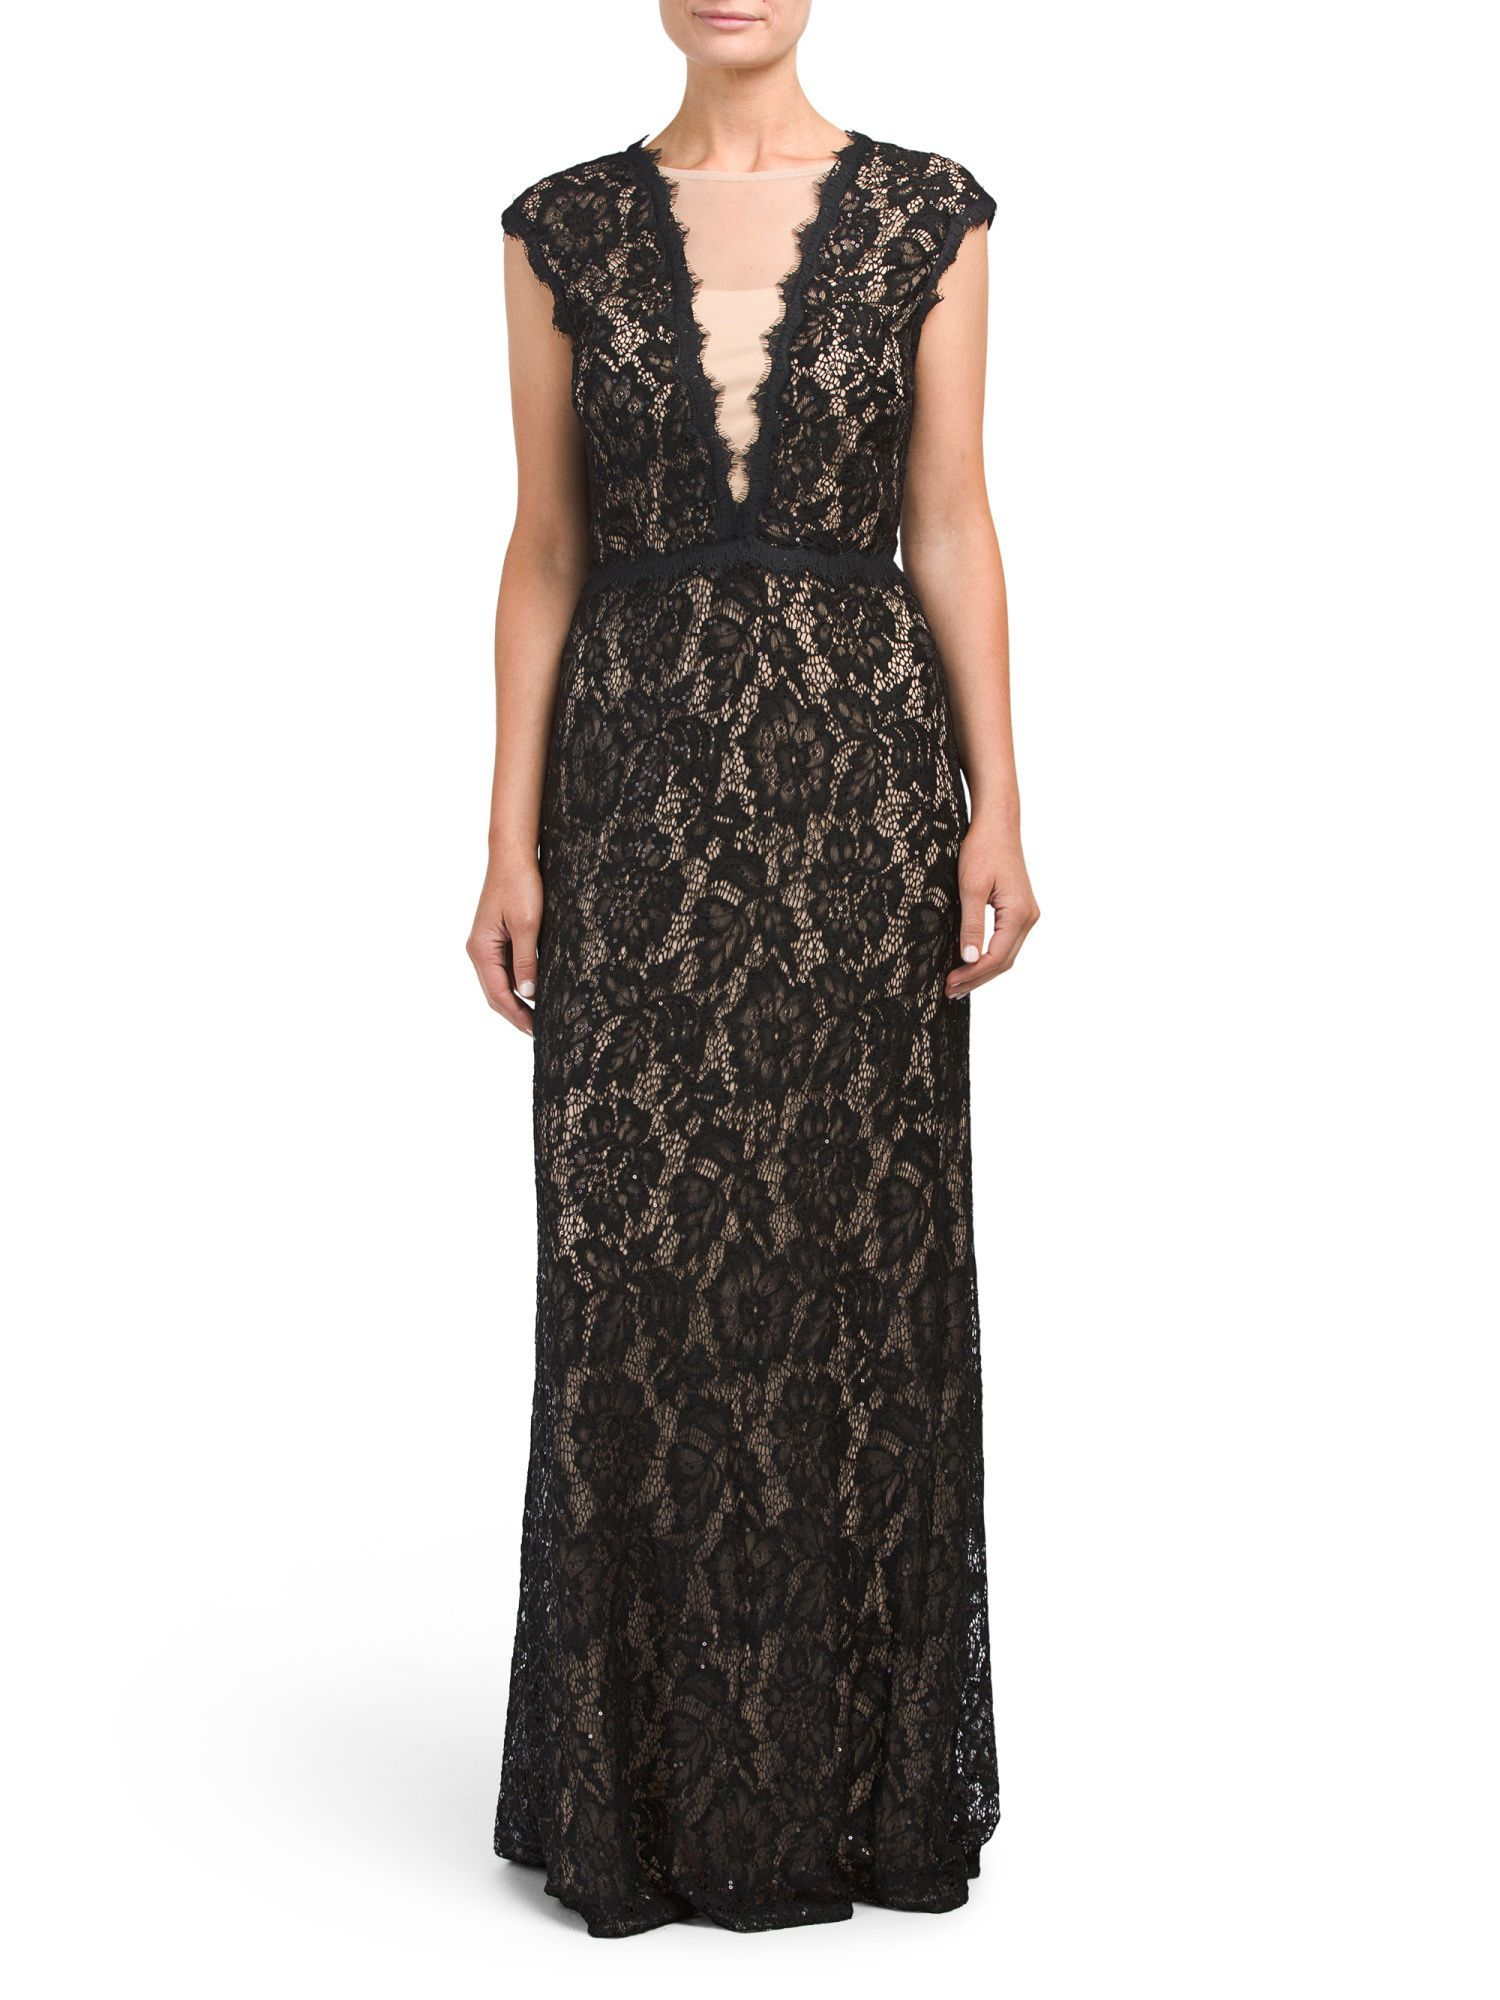 Too much cleavage wedding dress  Sleeveless All Over Lace Gown  Products  Pinterest  Products